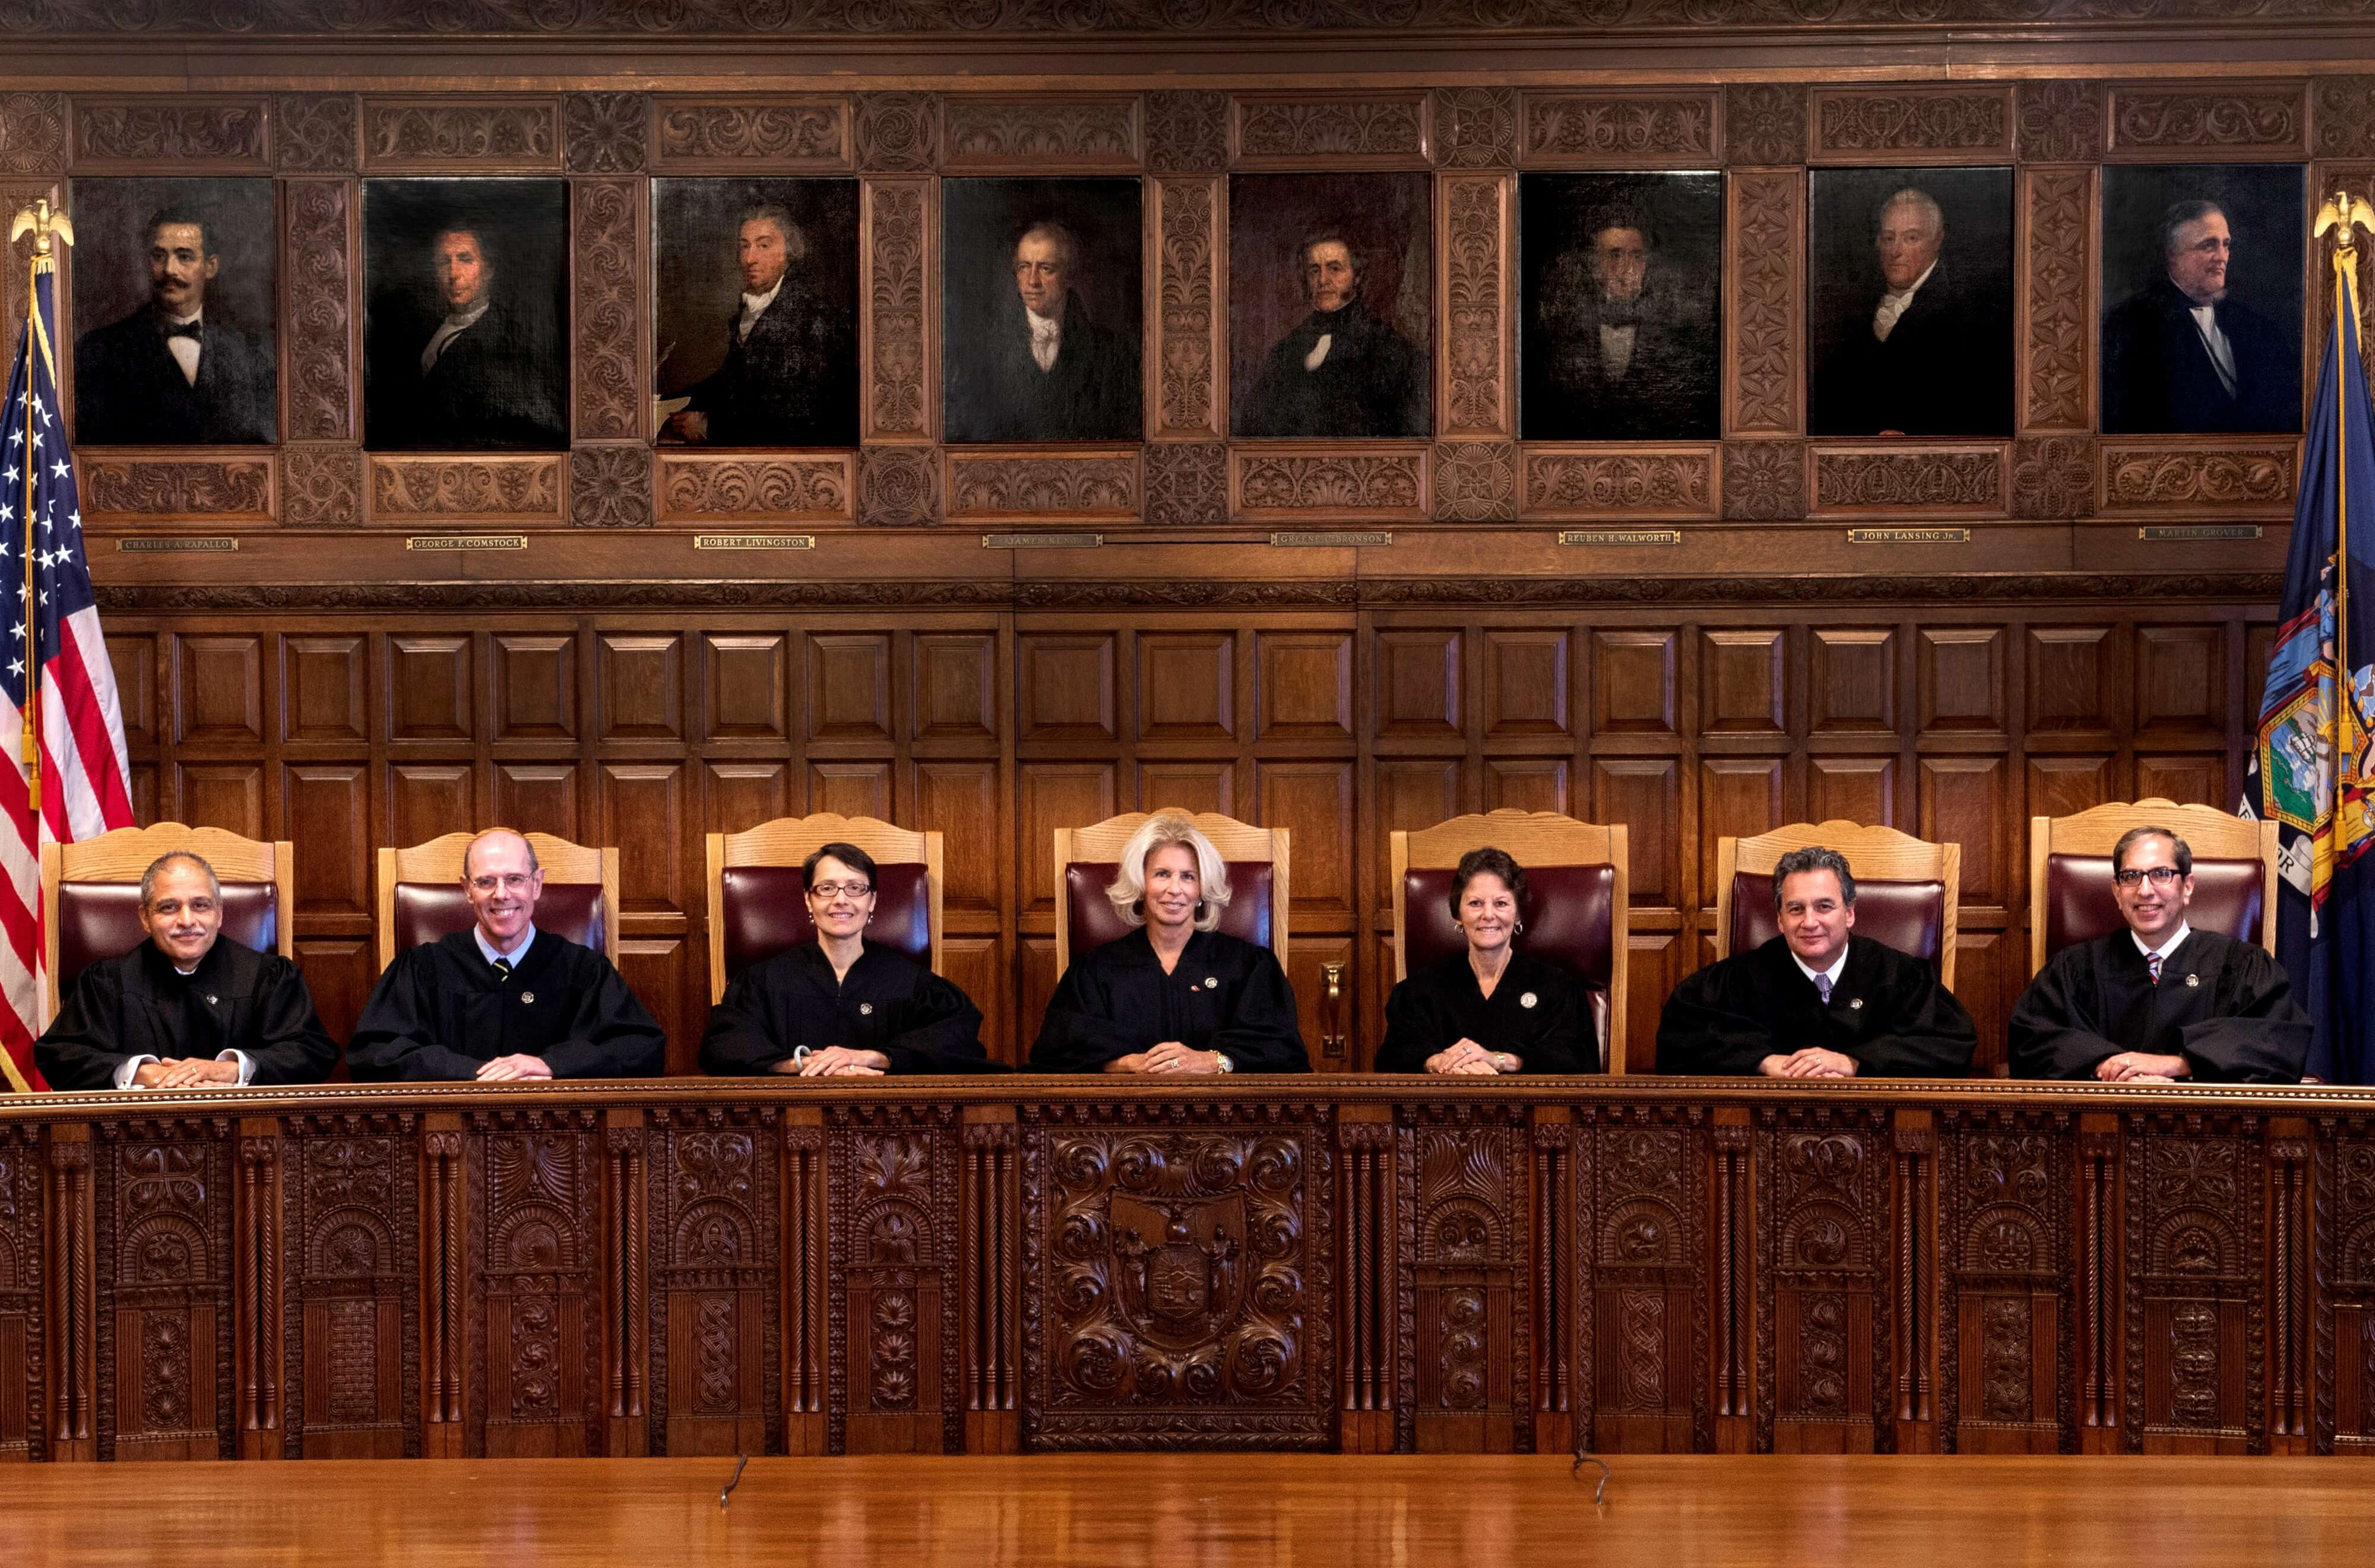 The Bench of the Court of Appeals, 2017